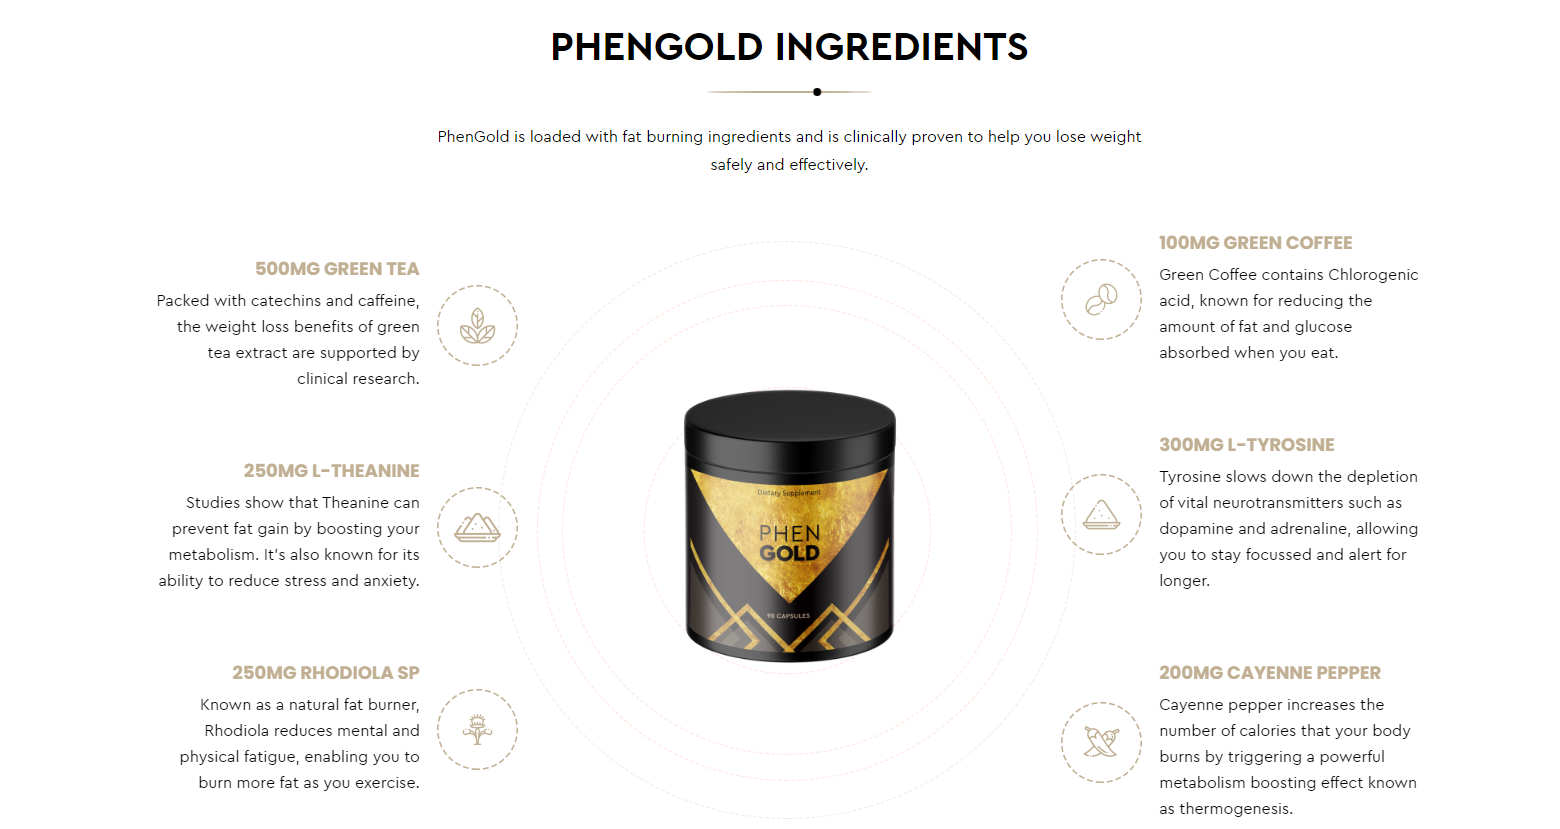 PhenGold ☛ Over a Period of Four Months I Was Able to Lose 21 Pounds!